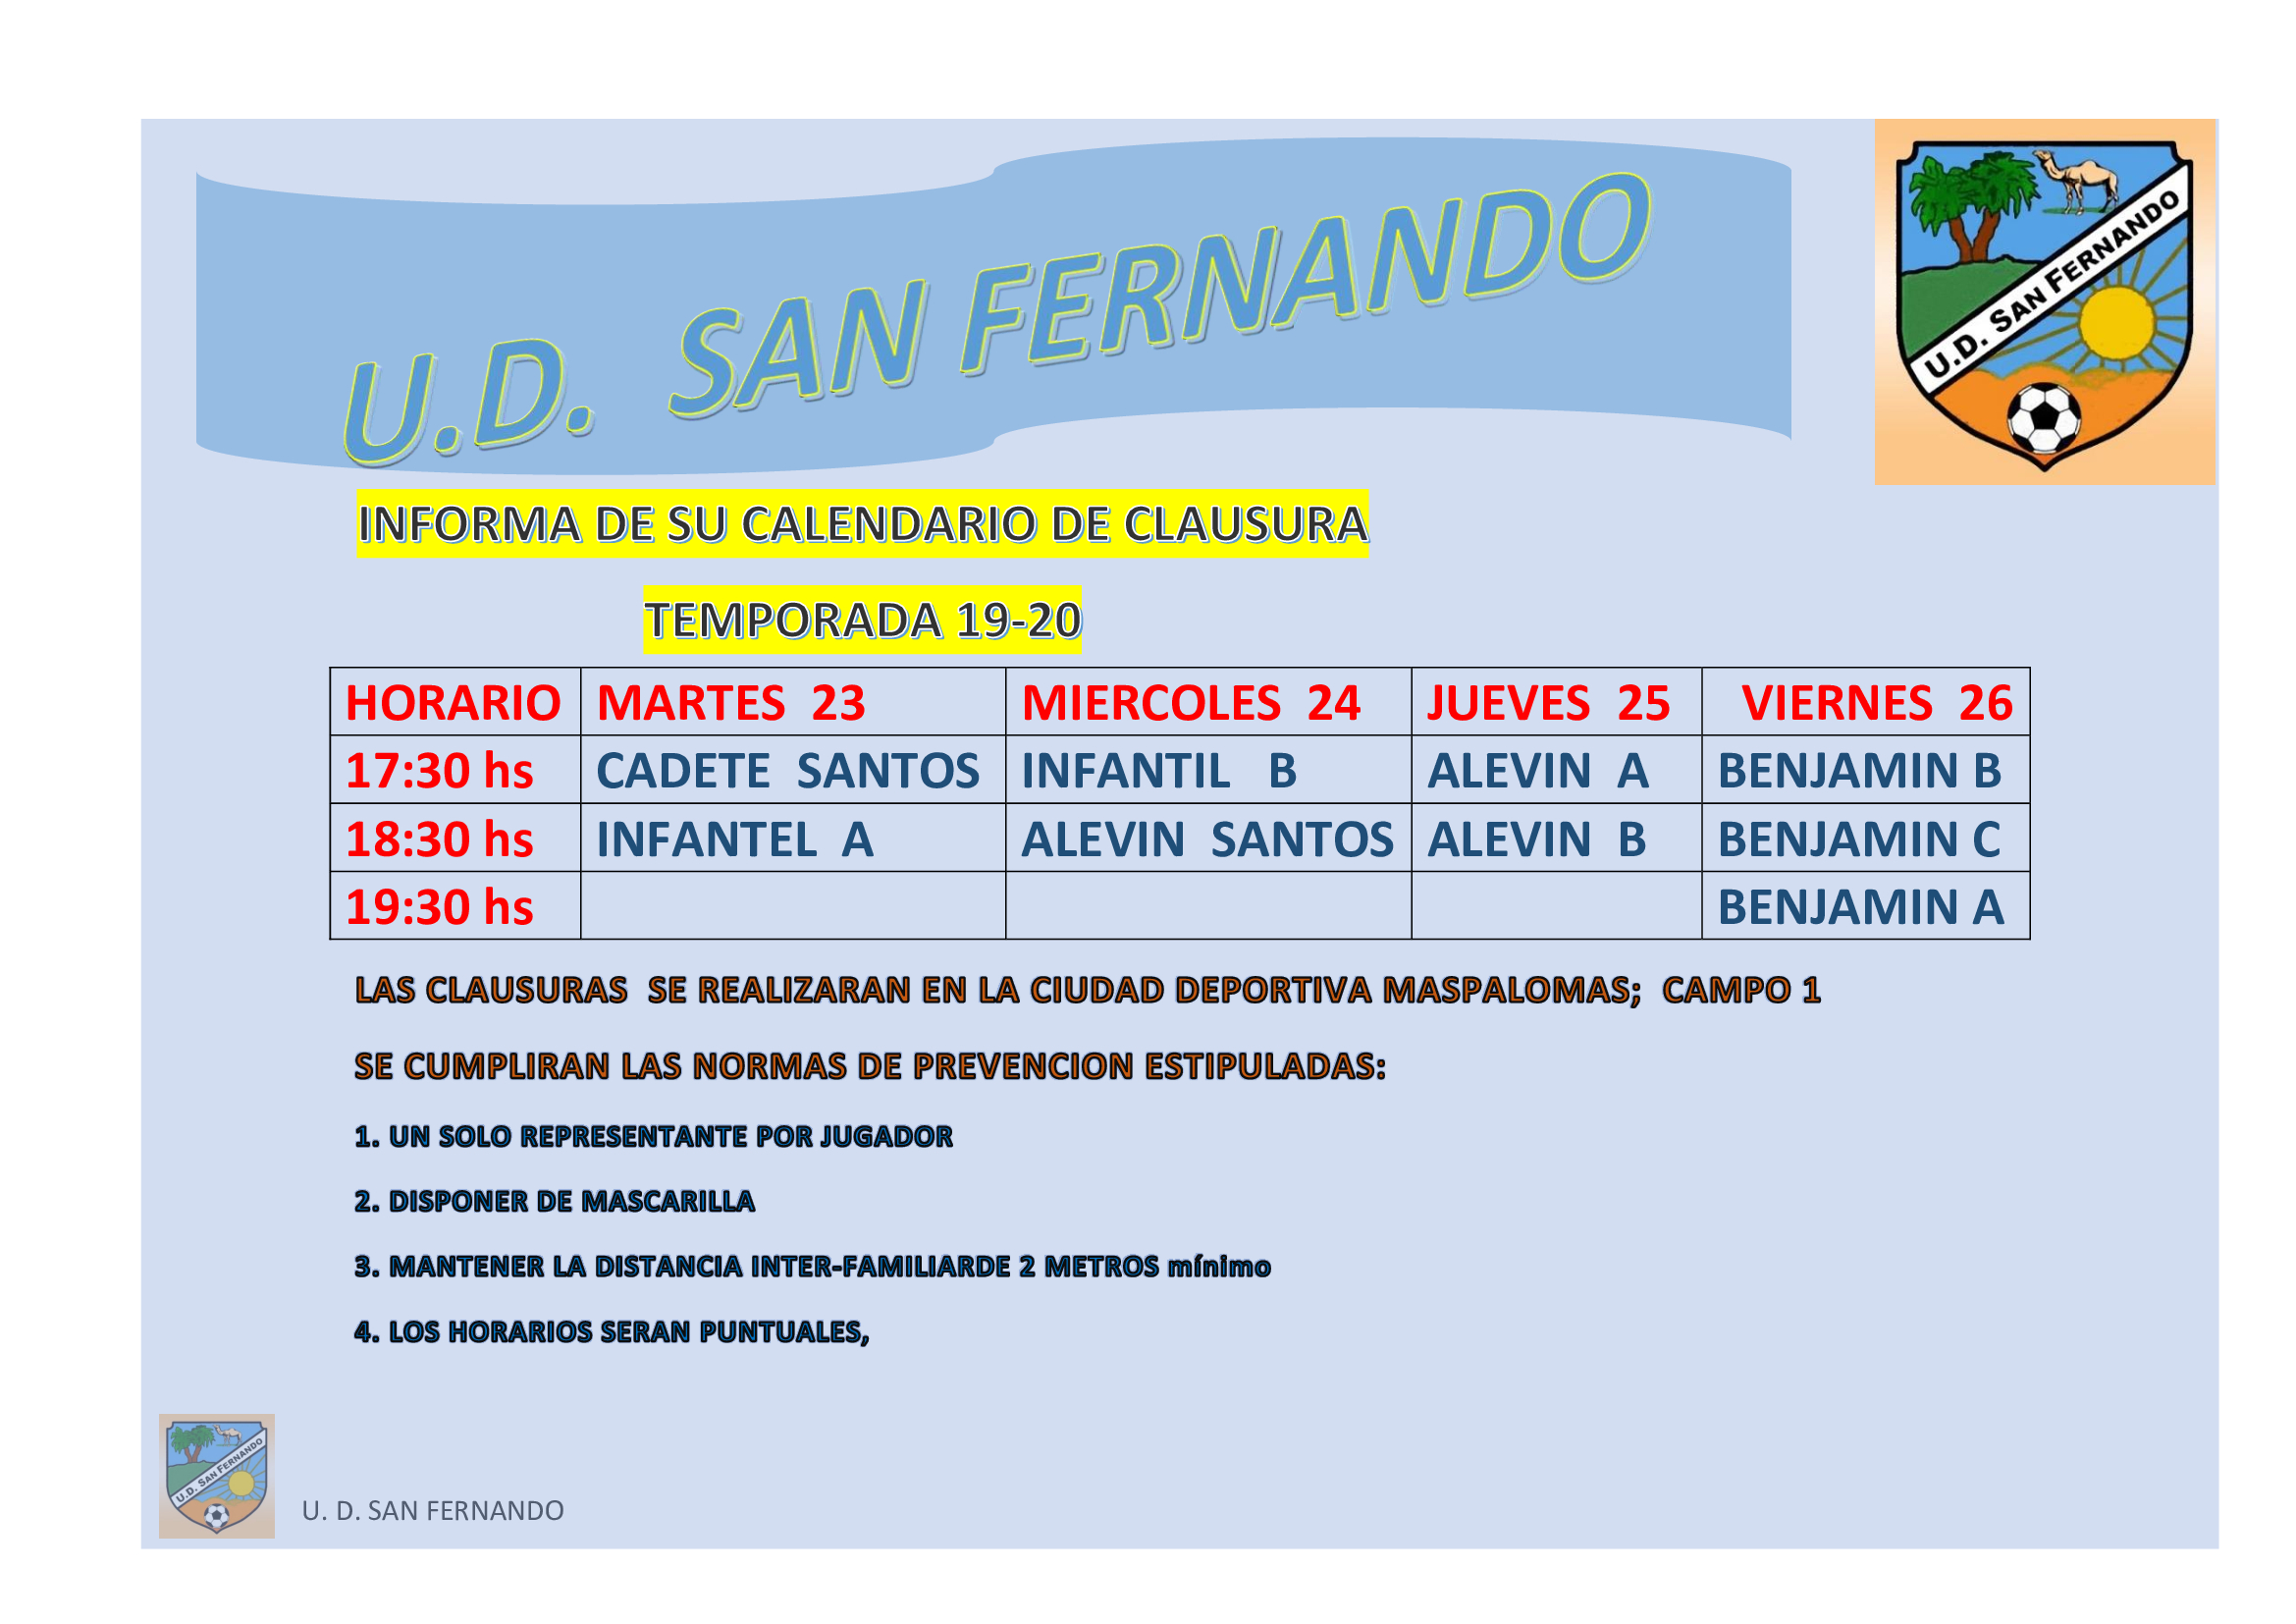 CLAUSURA TEMPORADA 19/20